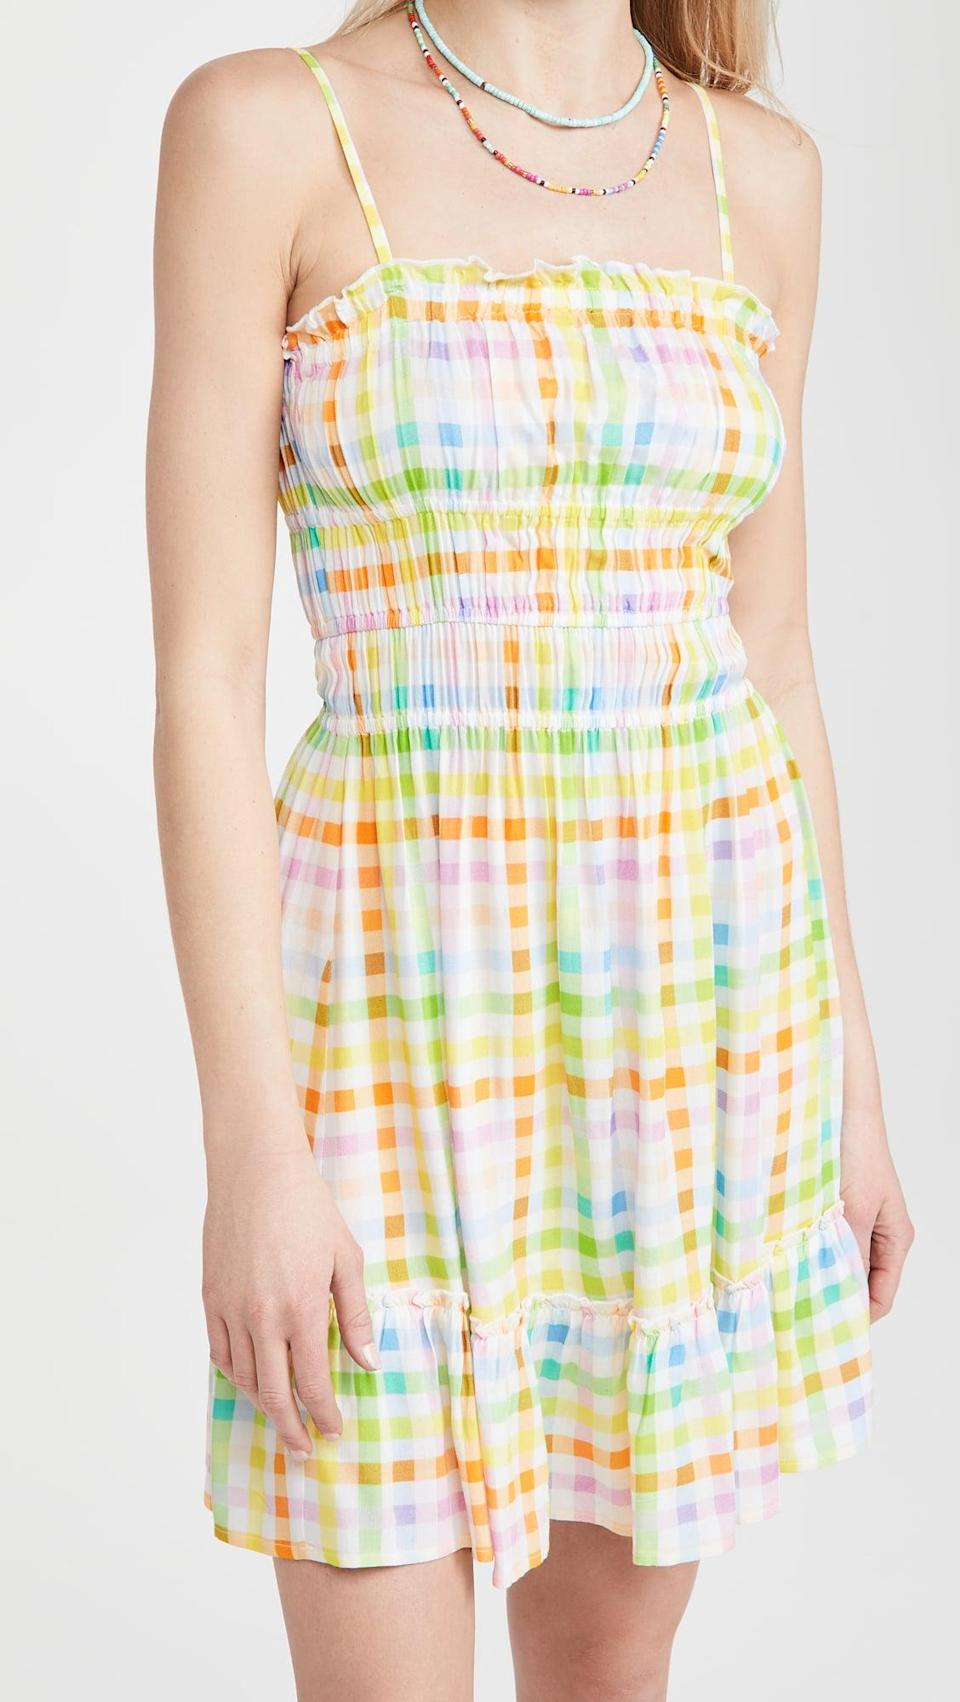 <p>This <span>Playa Lucila Minidress</span> ($125) is a bright and cheerful option you should take on your next vacation.</p>